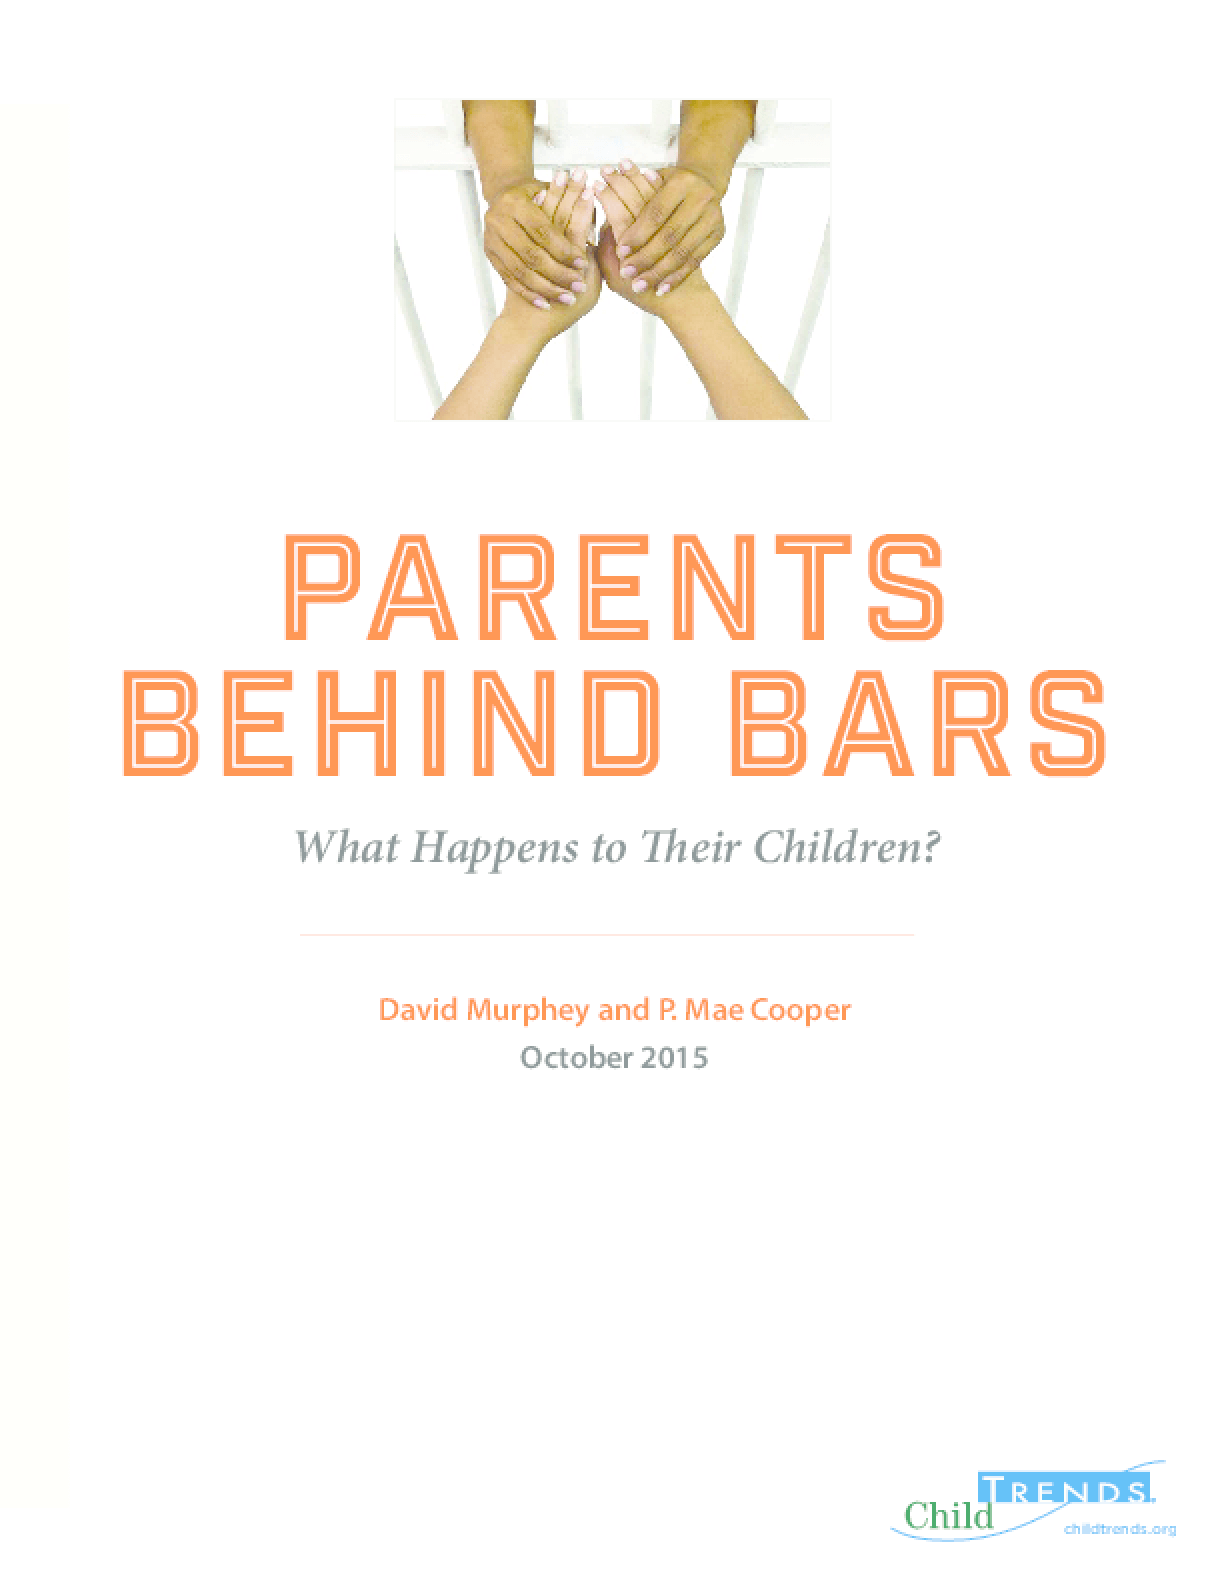 Parents Behind Bars: What Happens to Their Children?